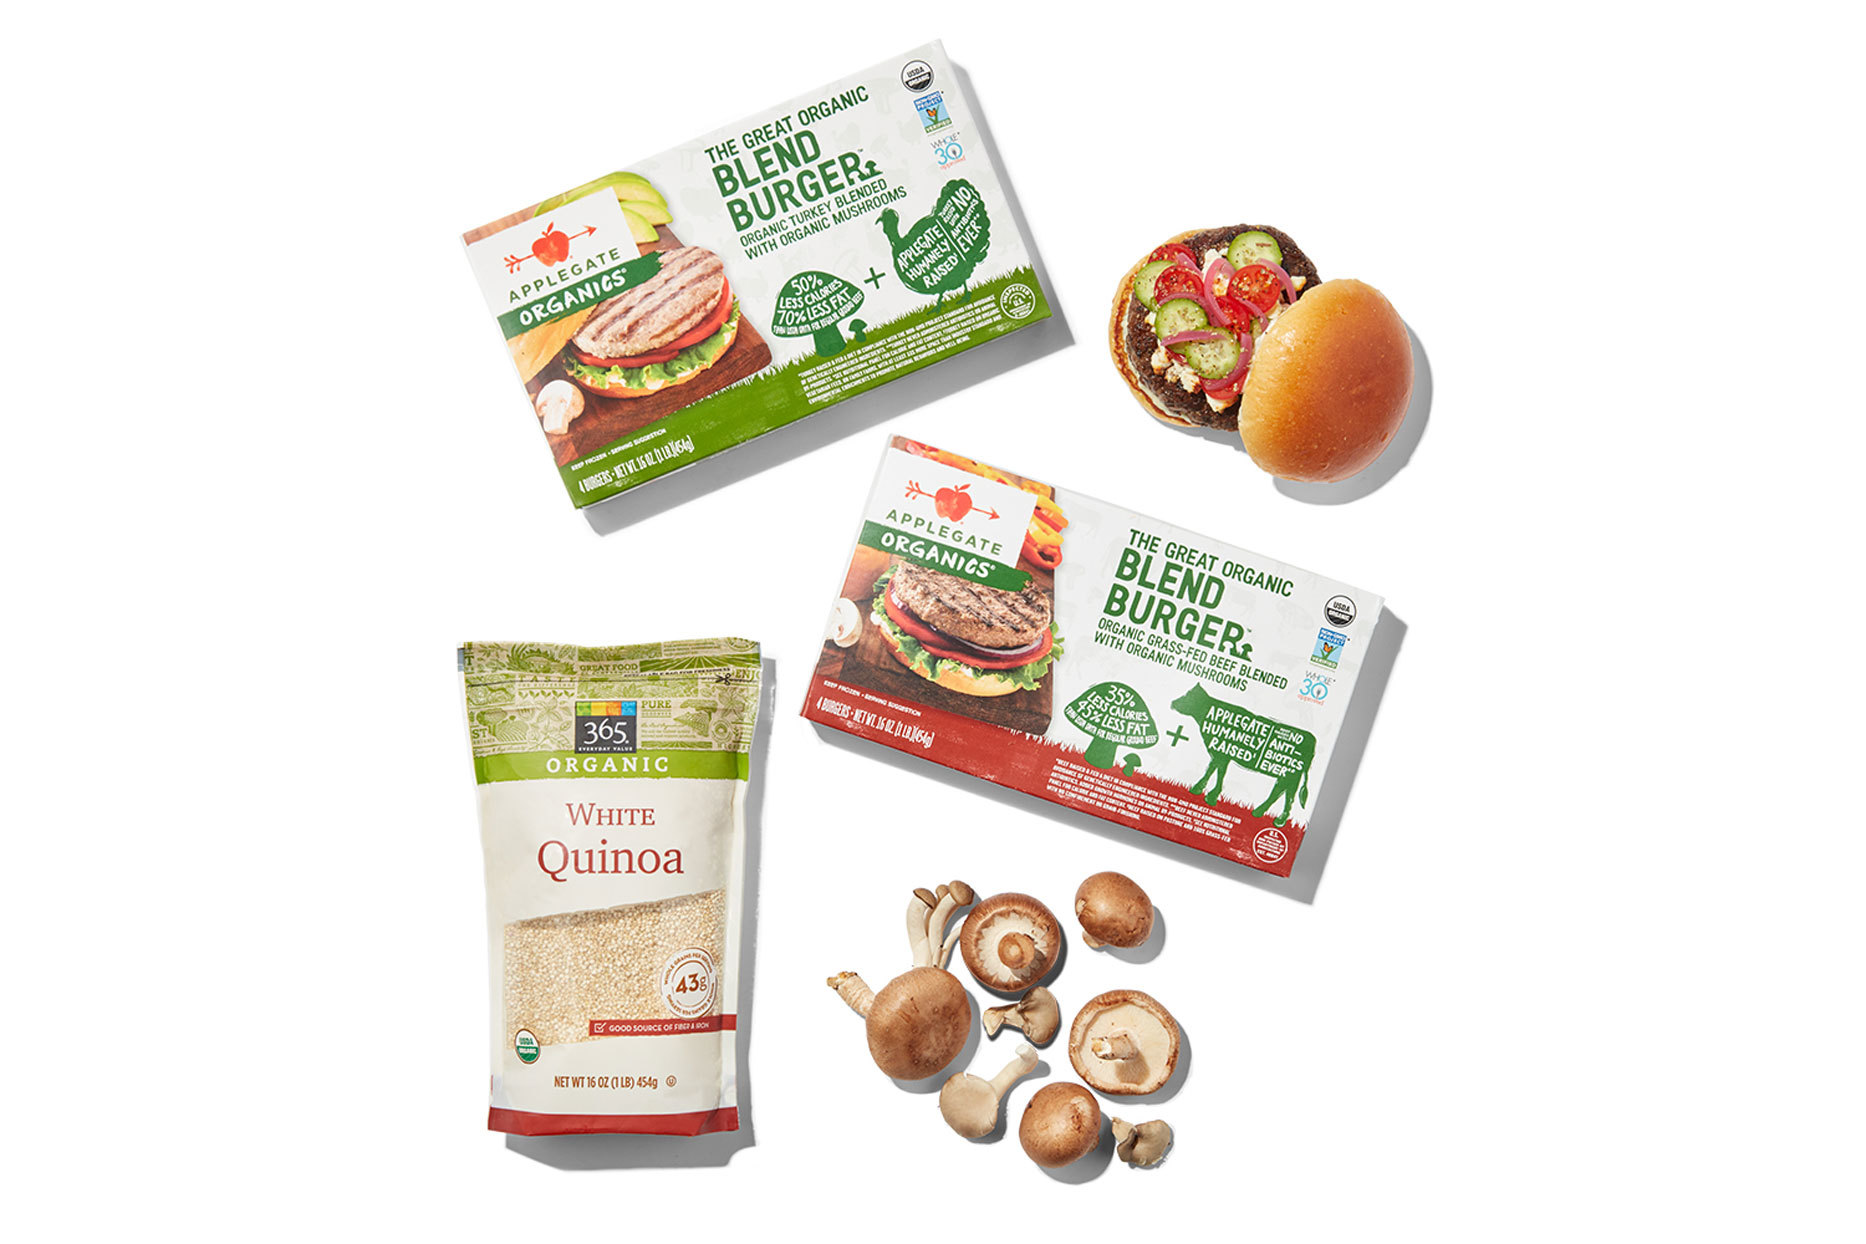 Flexitarian protein products